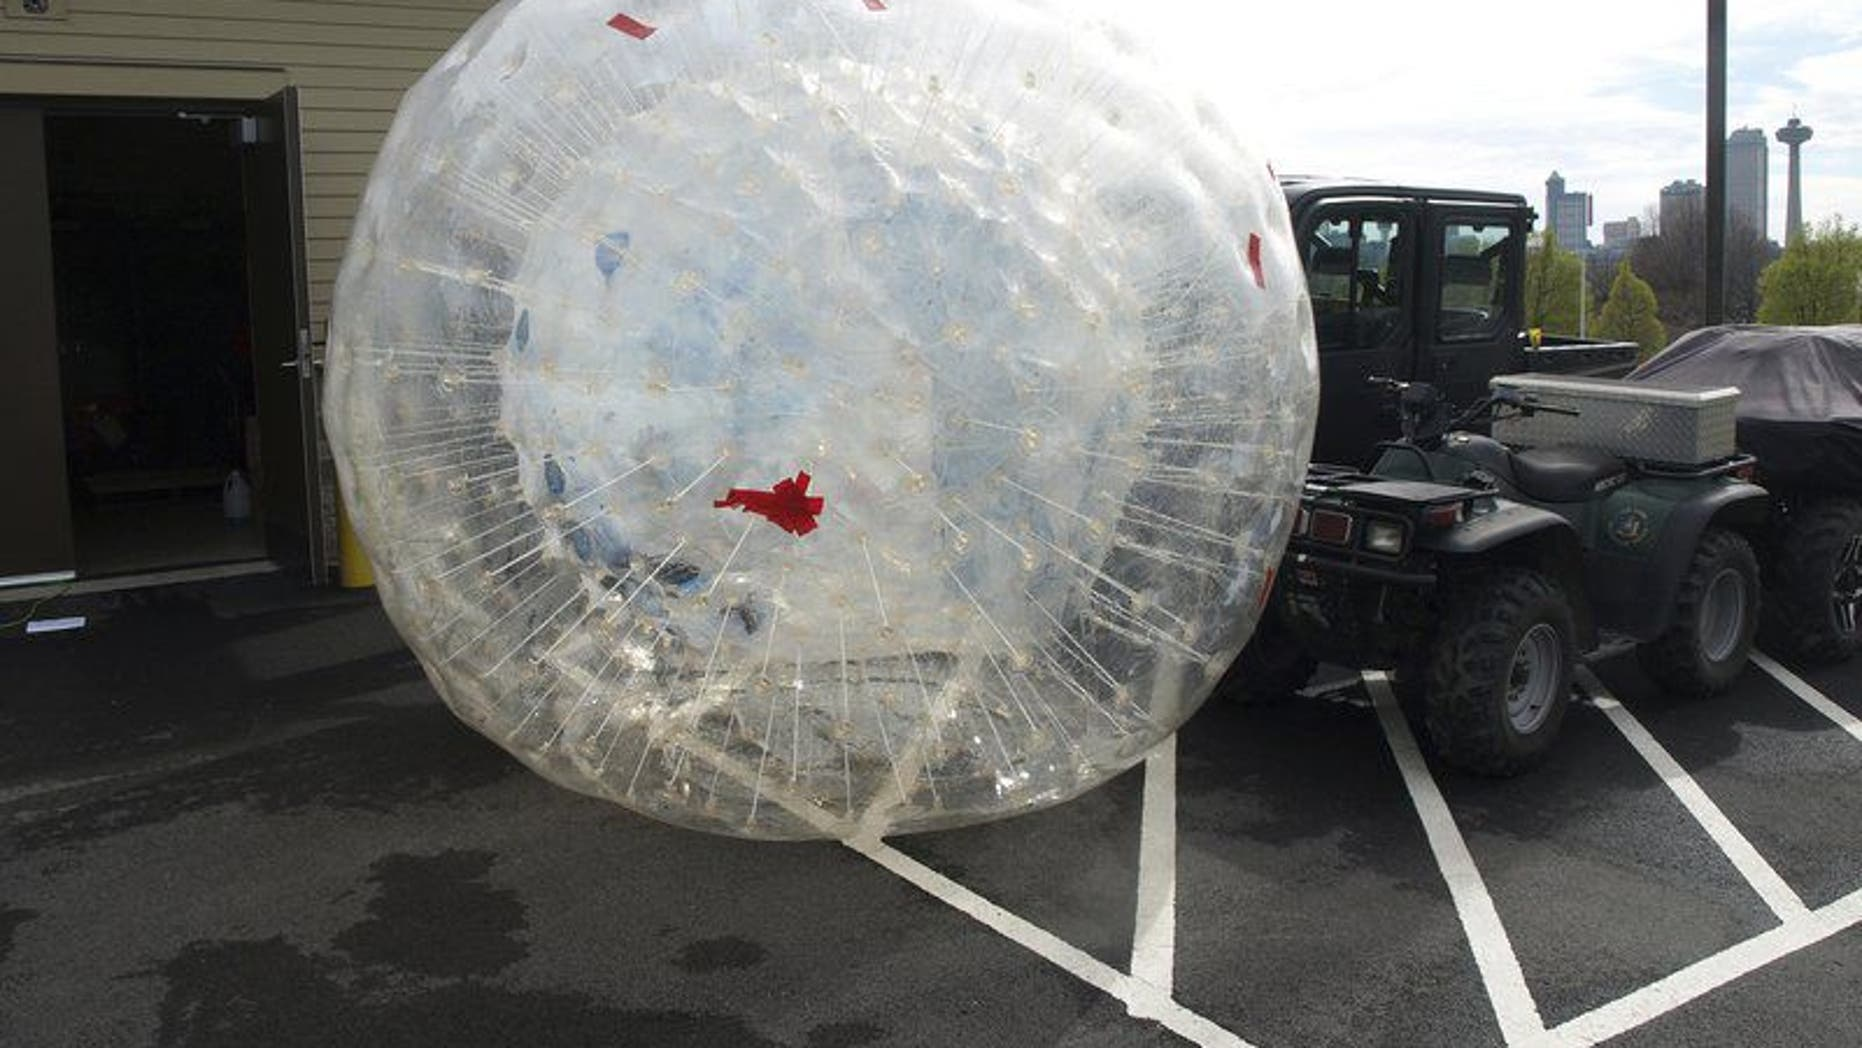 The inflatable ball Kirk Jones was to use for his stunt over Niagara Falls was recovered by the New York State Park Police. (New York State Park Police)